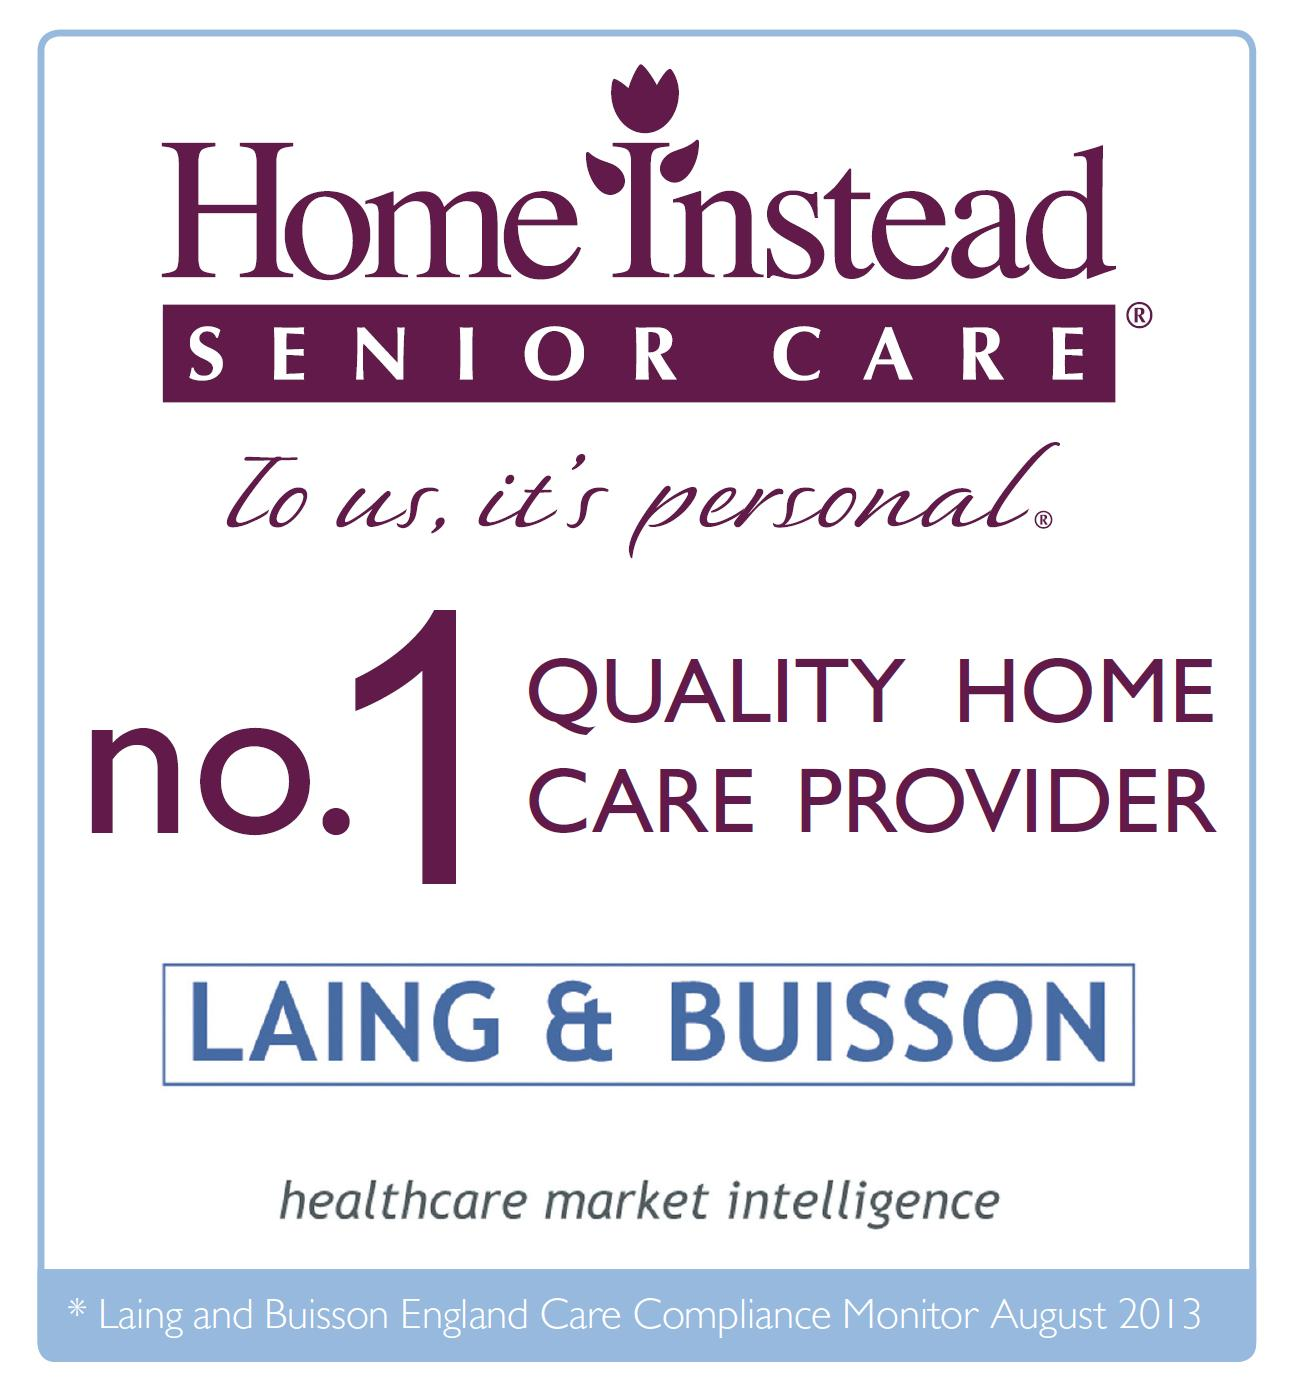 Home Instead's Laing & Buisson no.1 Quality Home Care Provider logo